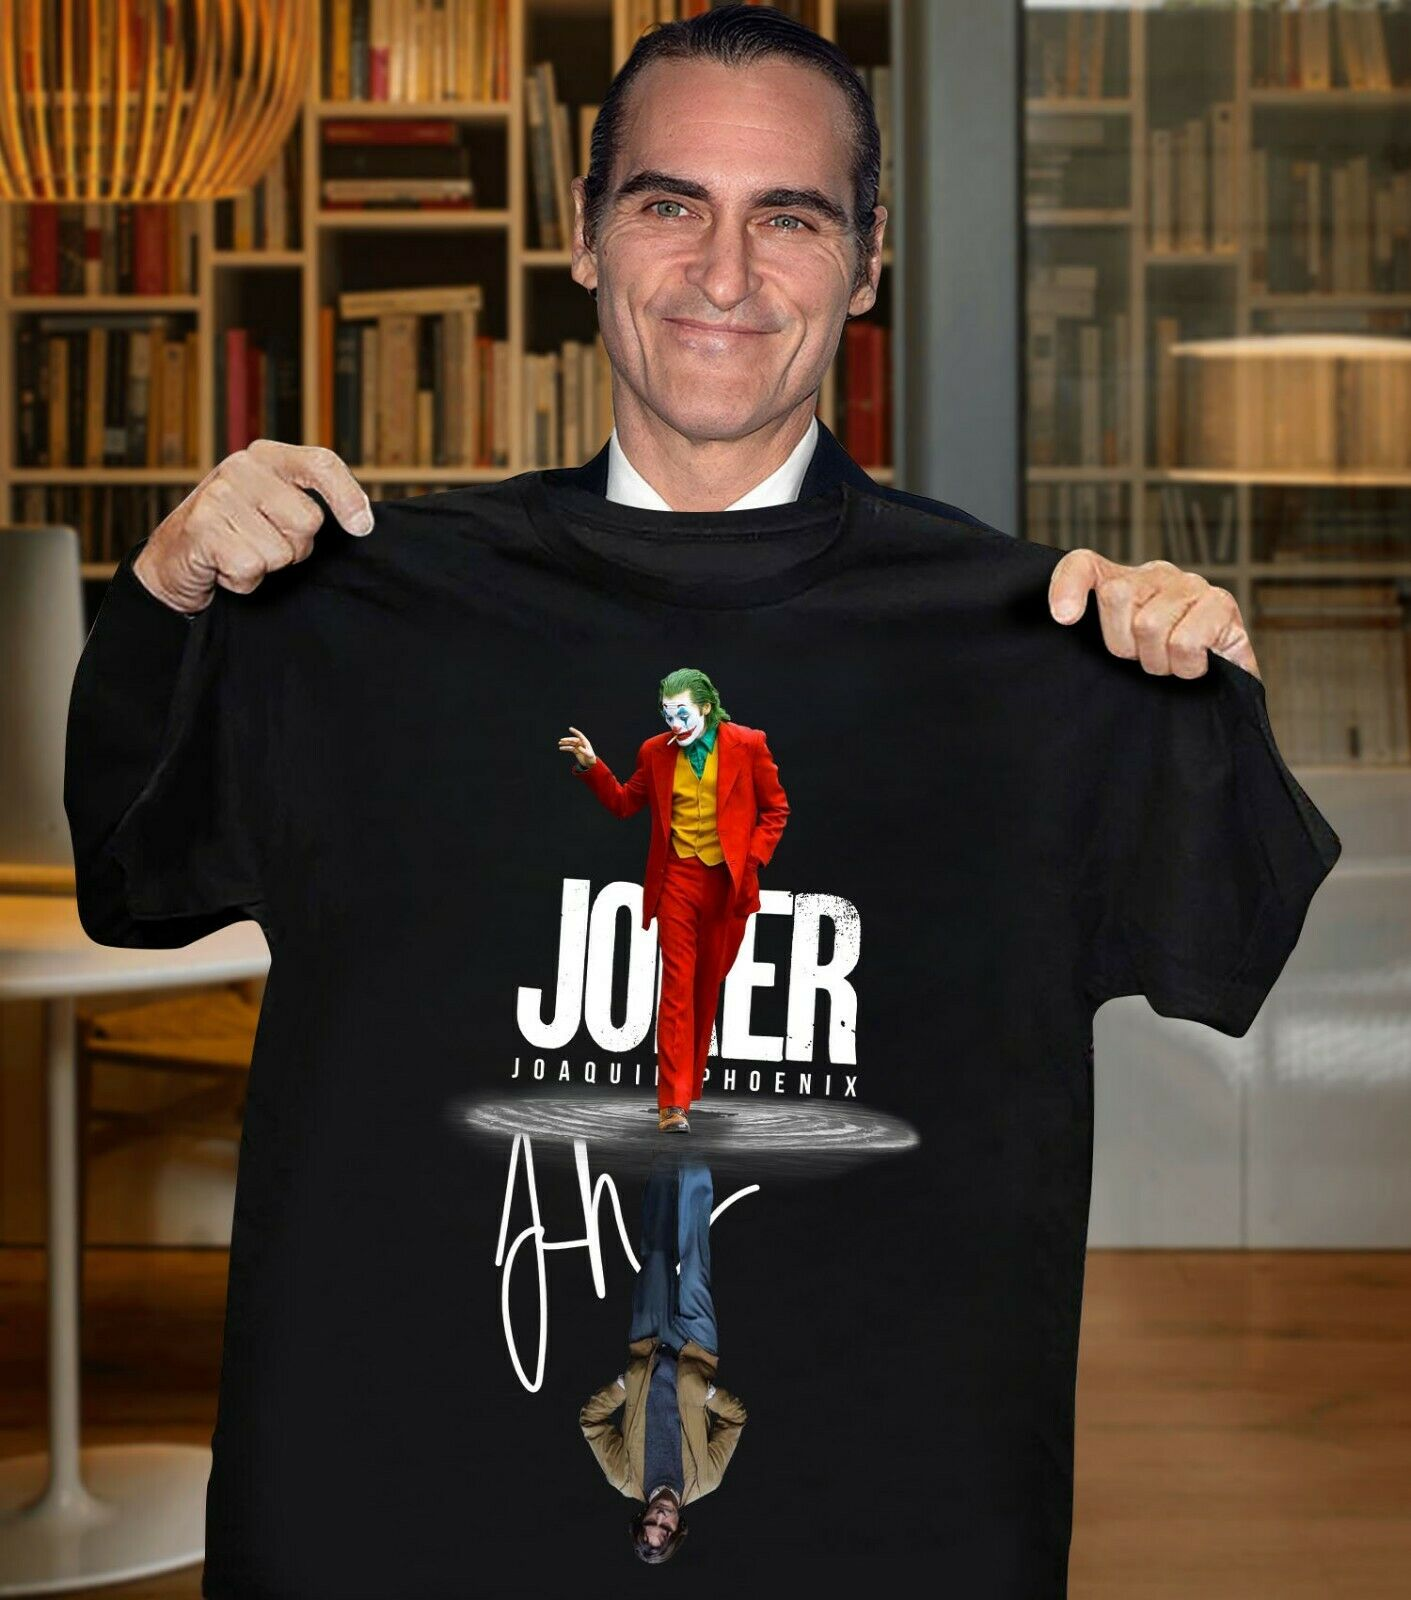 Joker Reflection Joaquin Phoenix T Shirt Signature